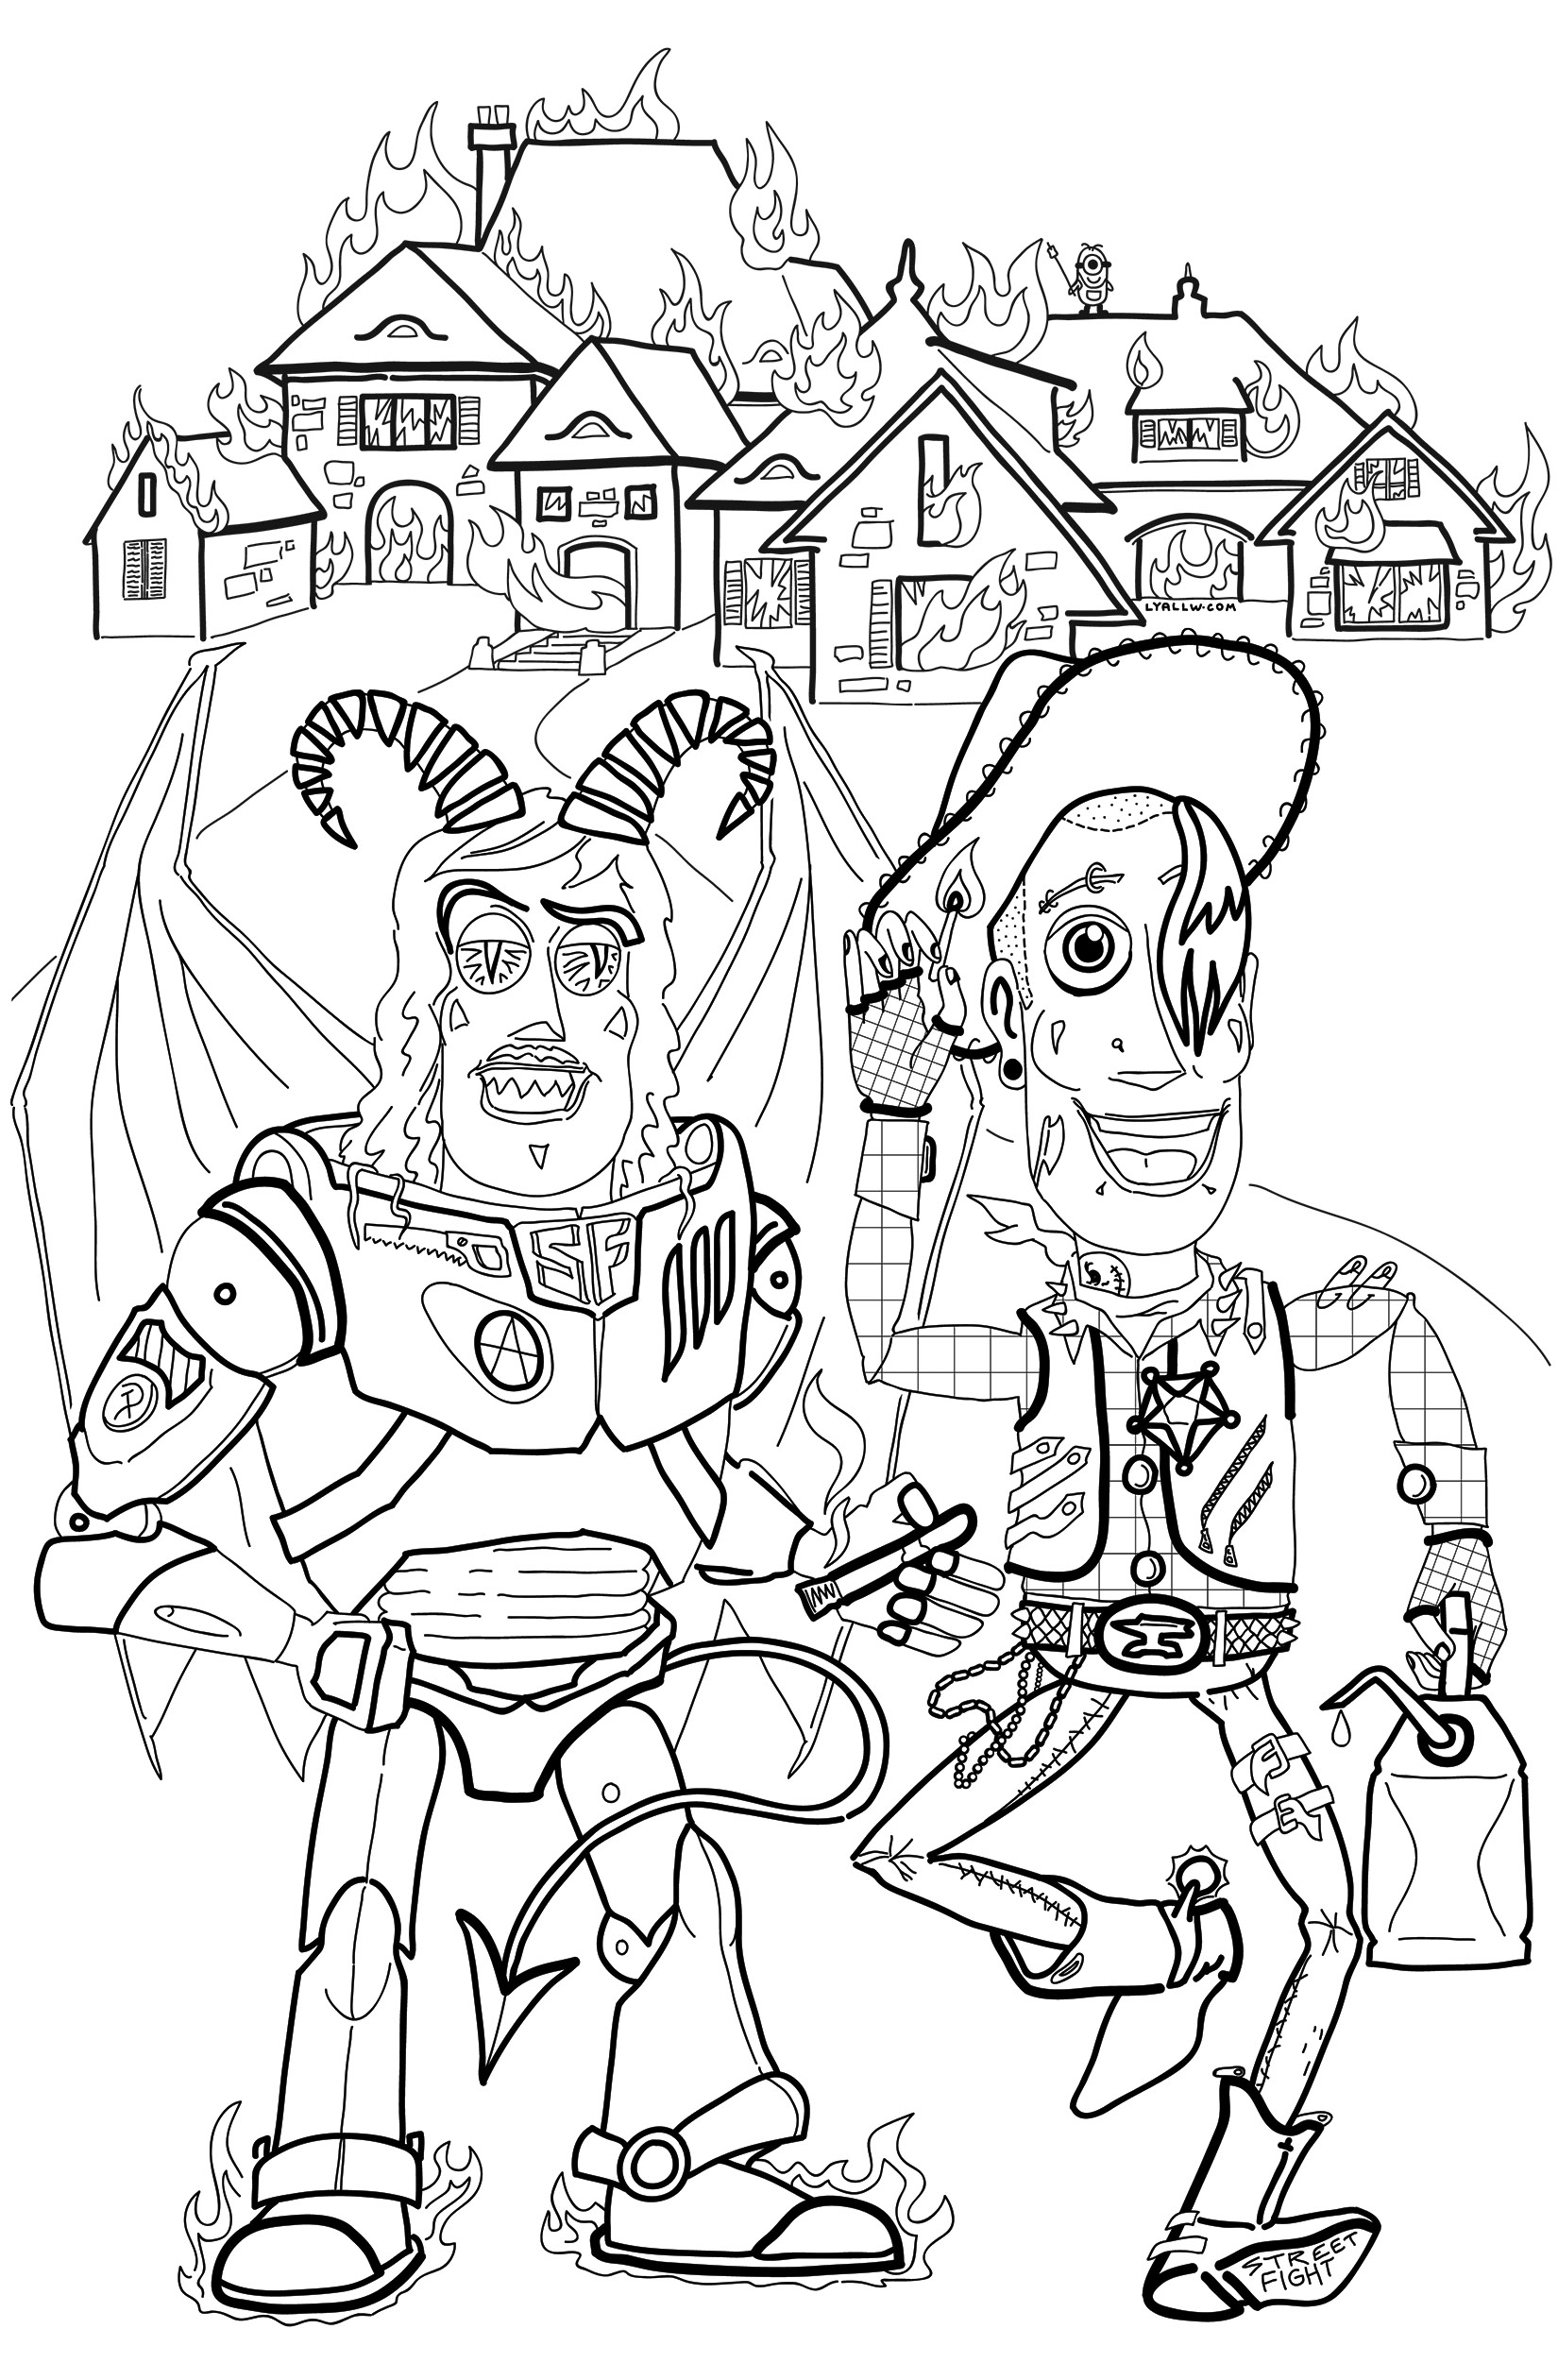 ' Woody & Buzz Commit an Arson ' illustration for the June 2018 ' Copyright Criminals Coloring Book ' zine.